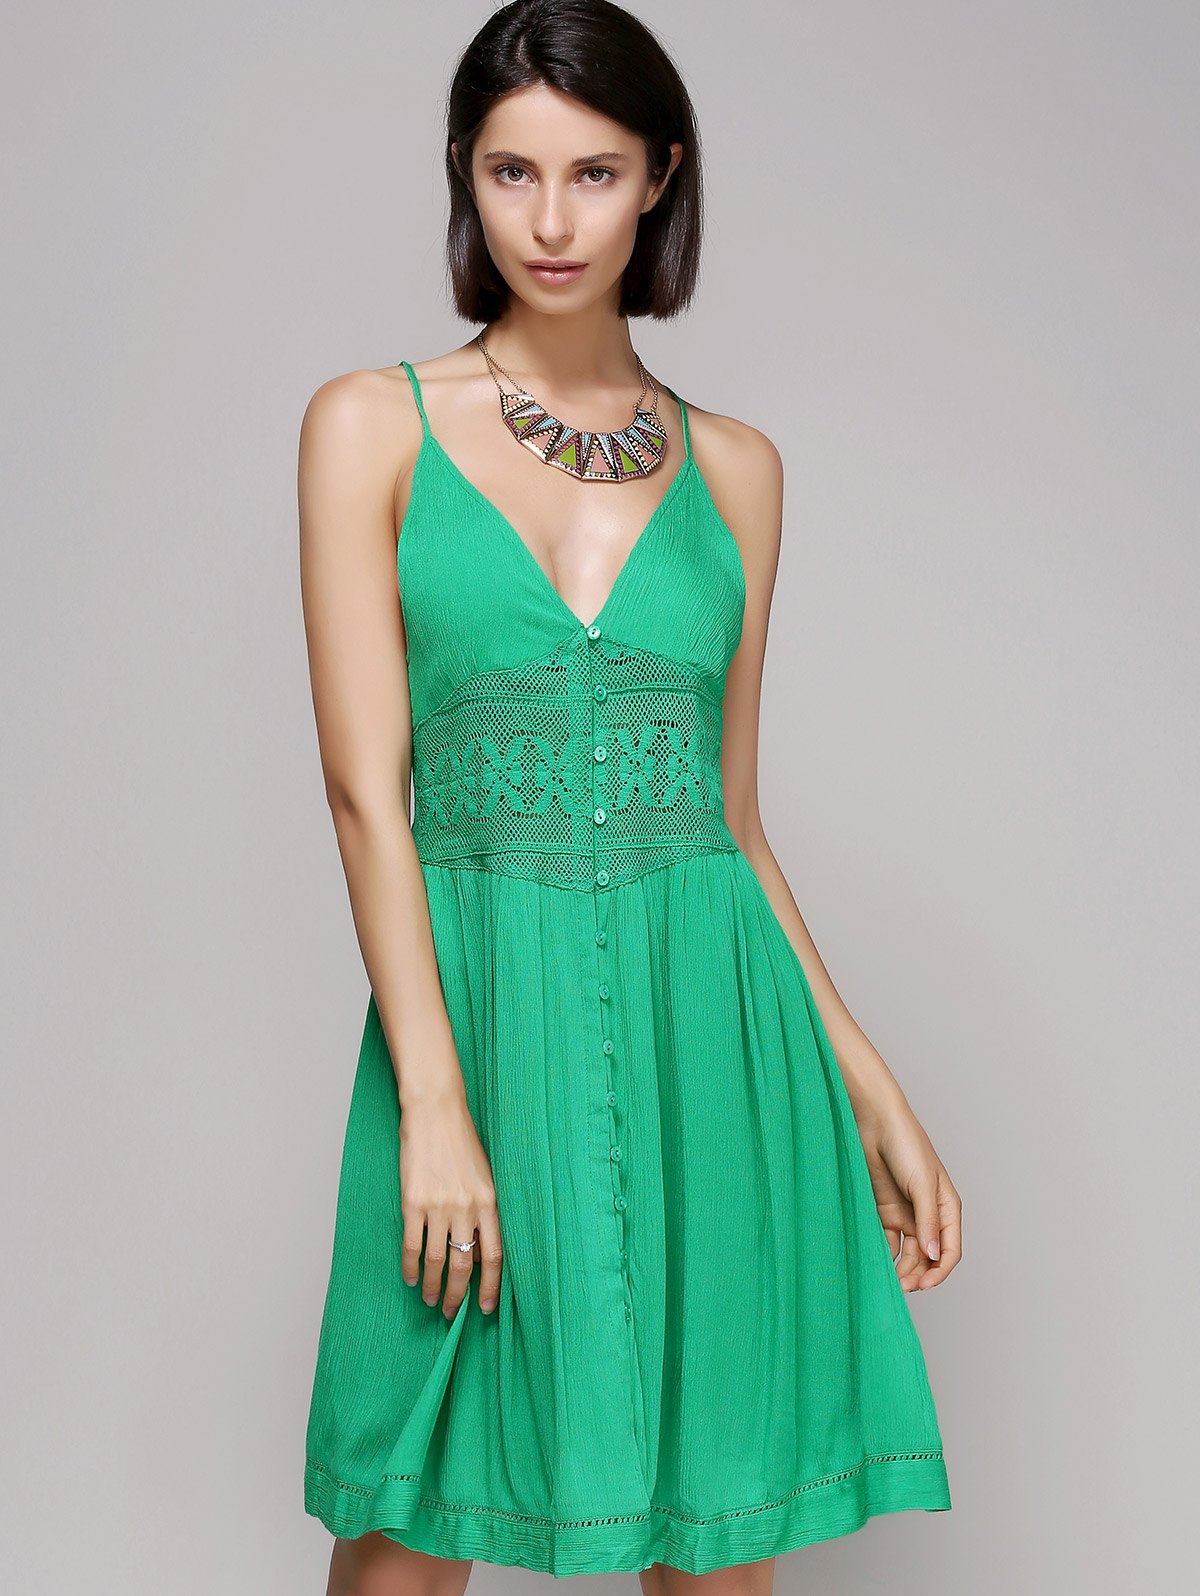 Stylish Laced Plunging Neck Sleeveless Dress For Women - GREEN L